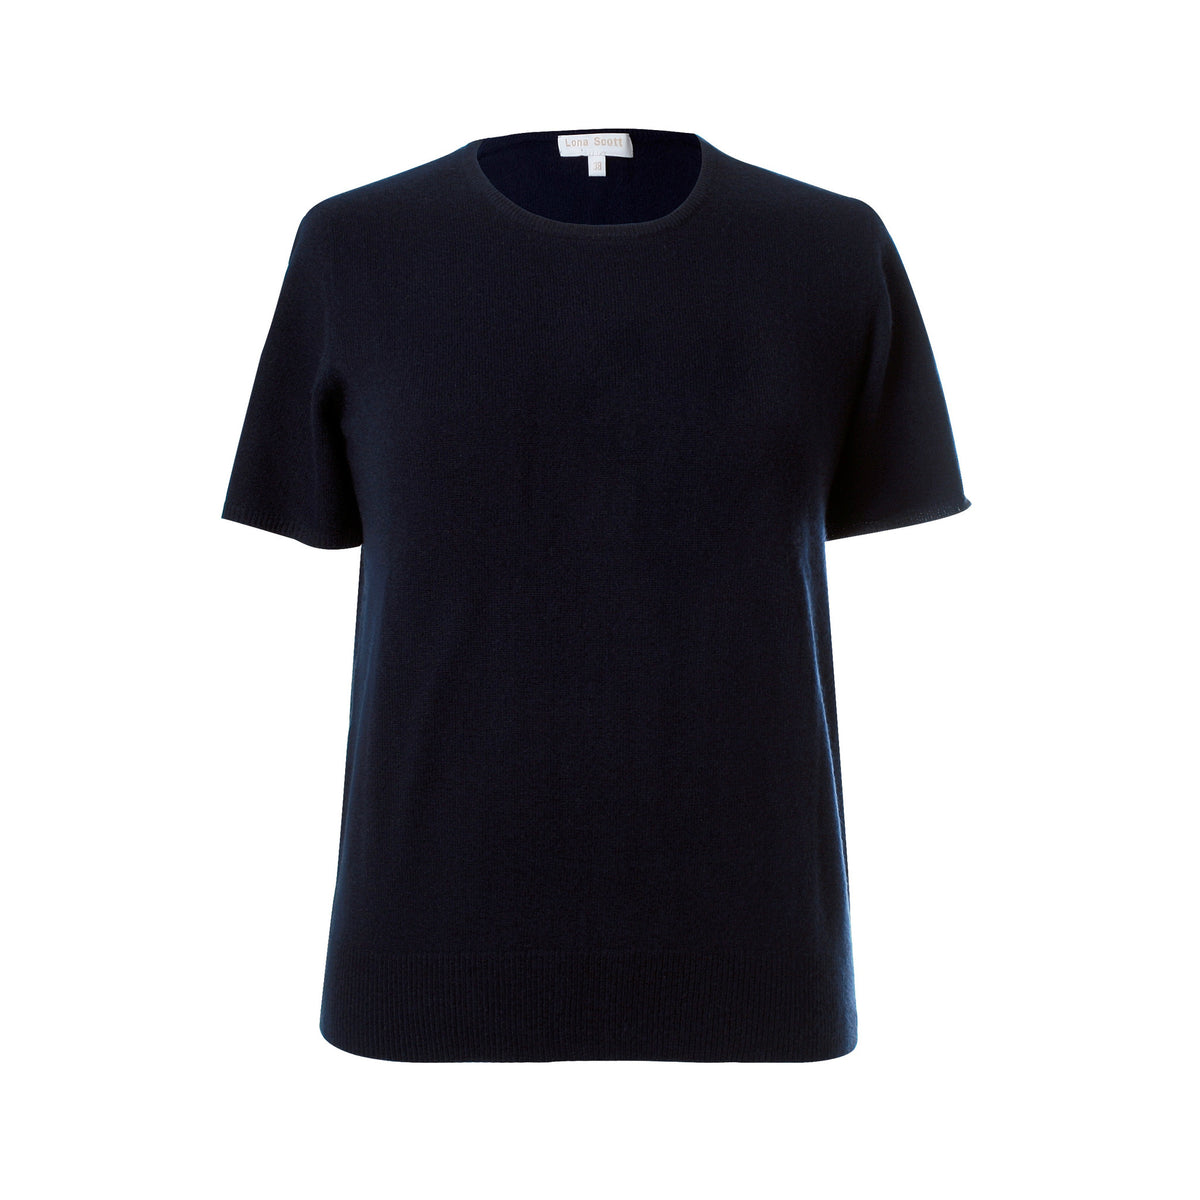 Ladies Navy Blue Cashmere Sweater | Short Sleeve | The Cashmere Choice London